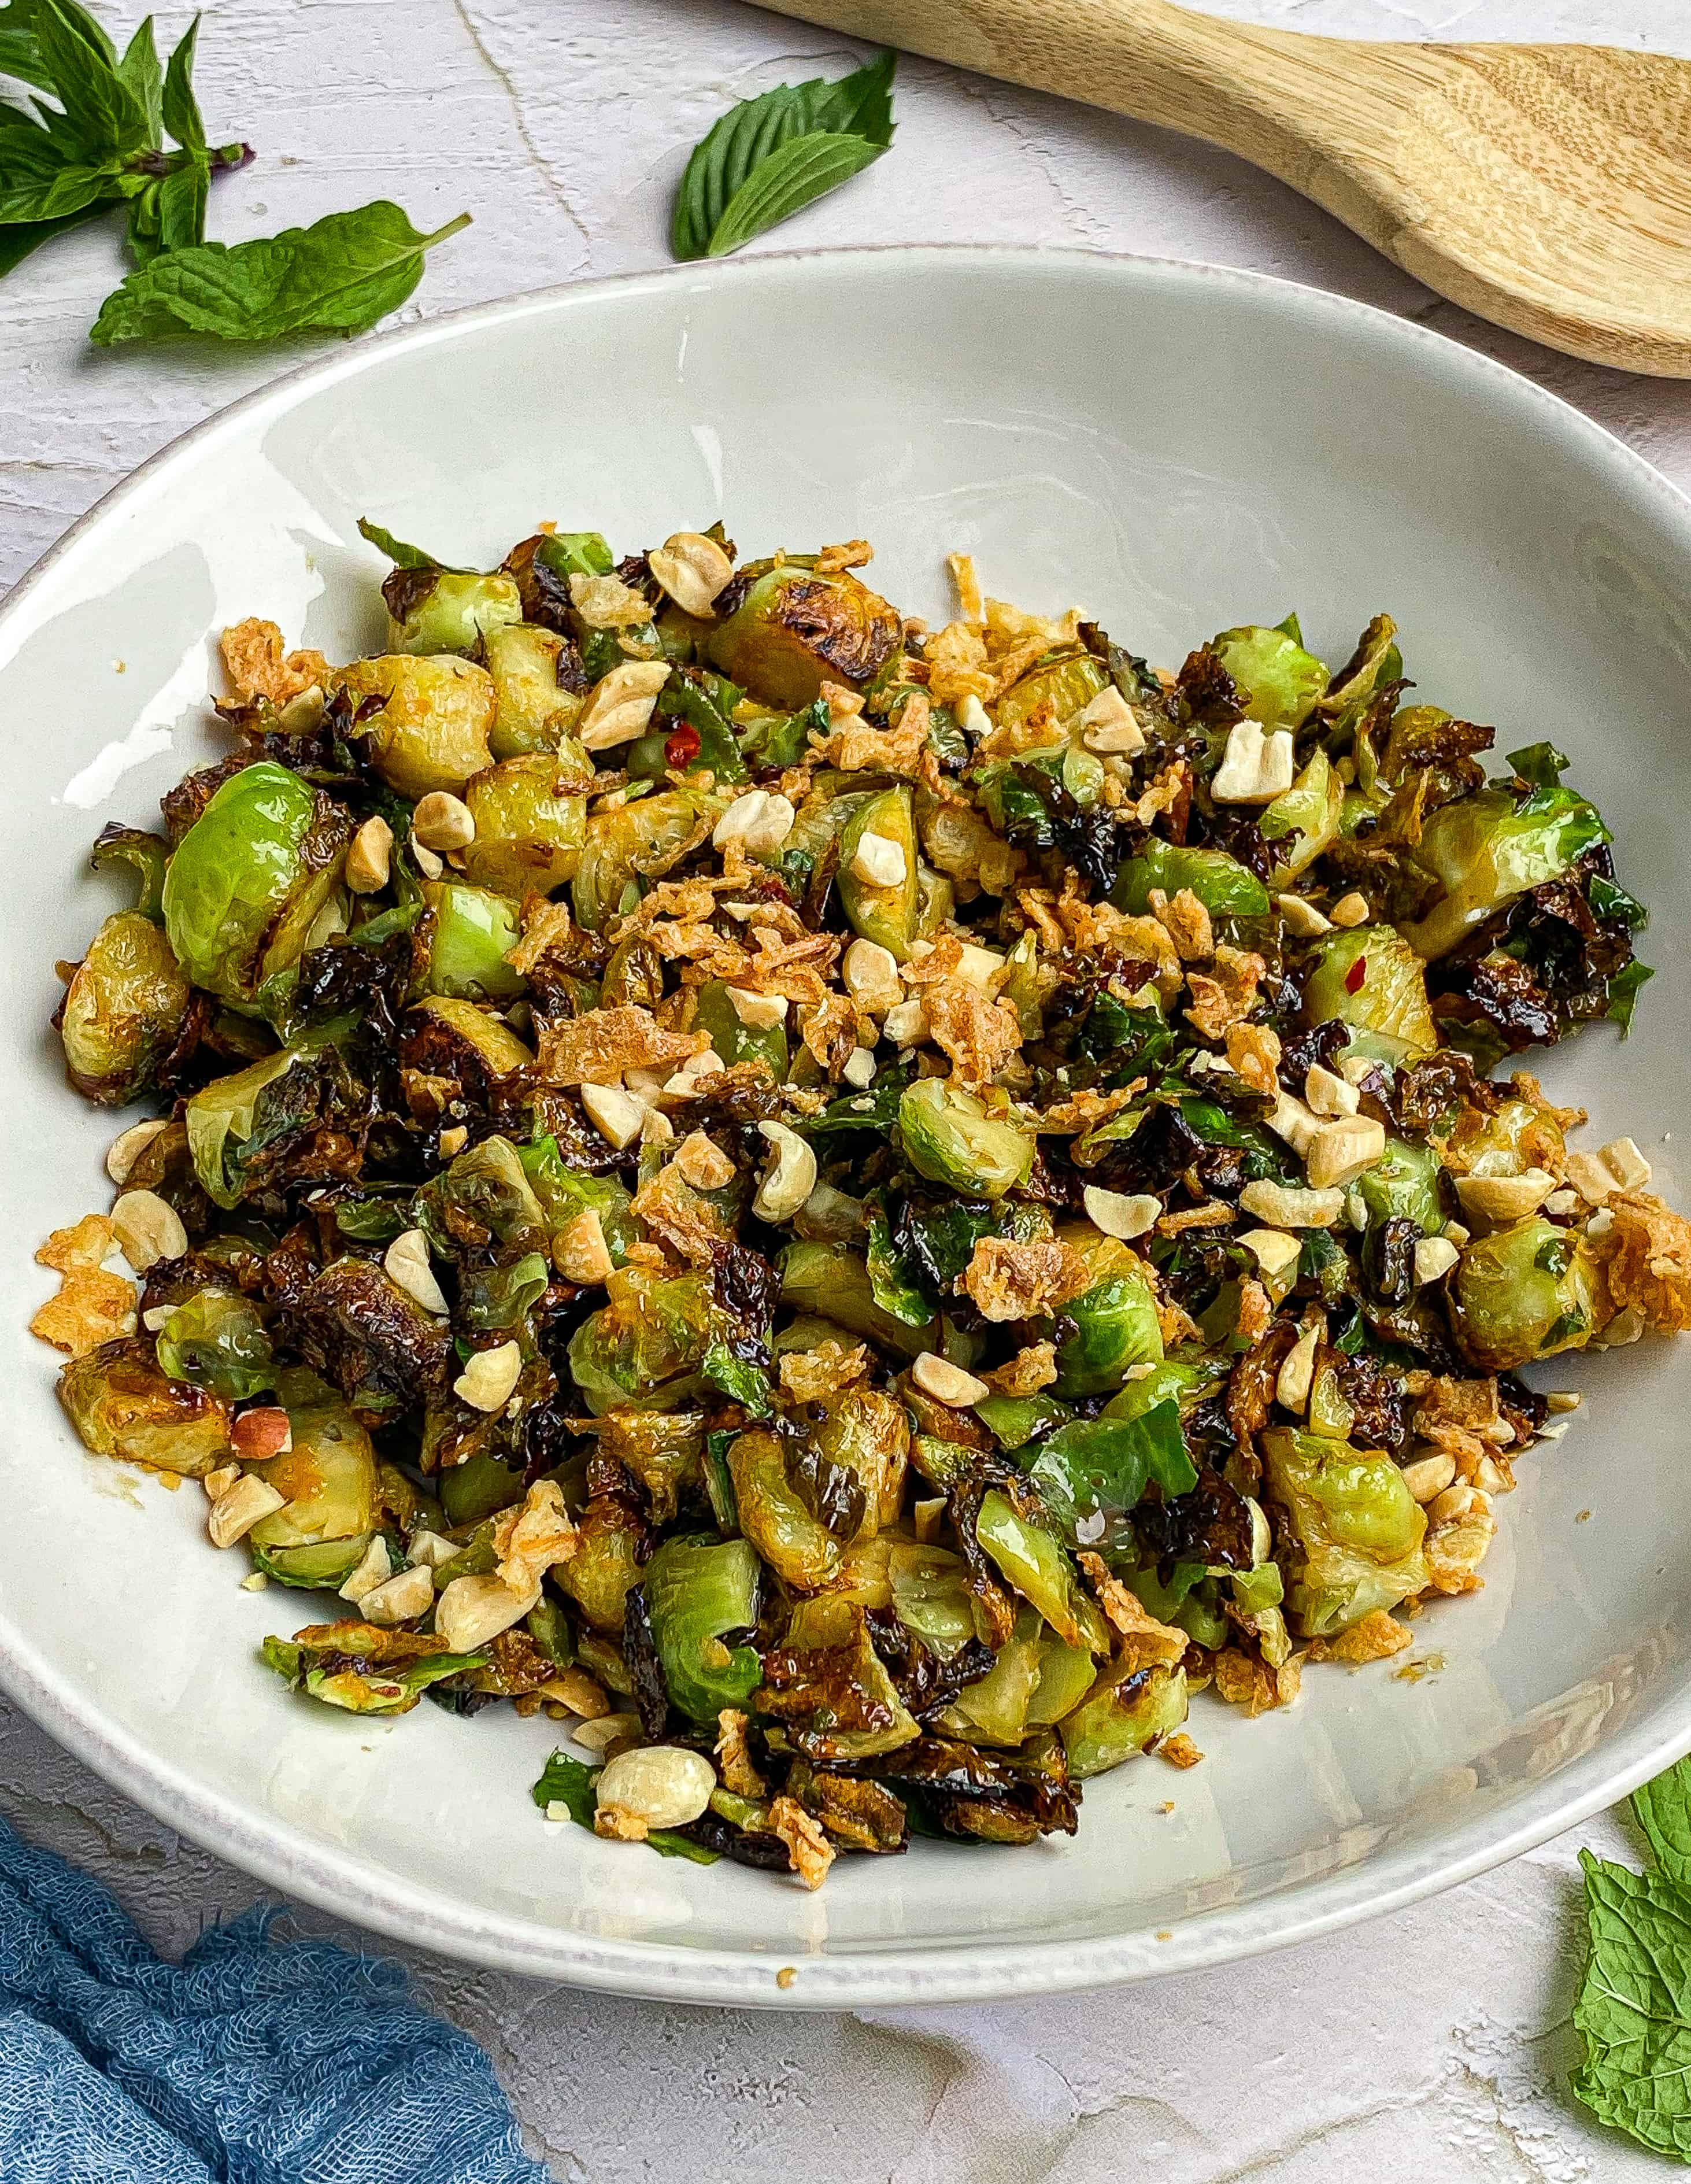 Crispy Brussel Sprouts With Soy-Ginger Vinaigrette